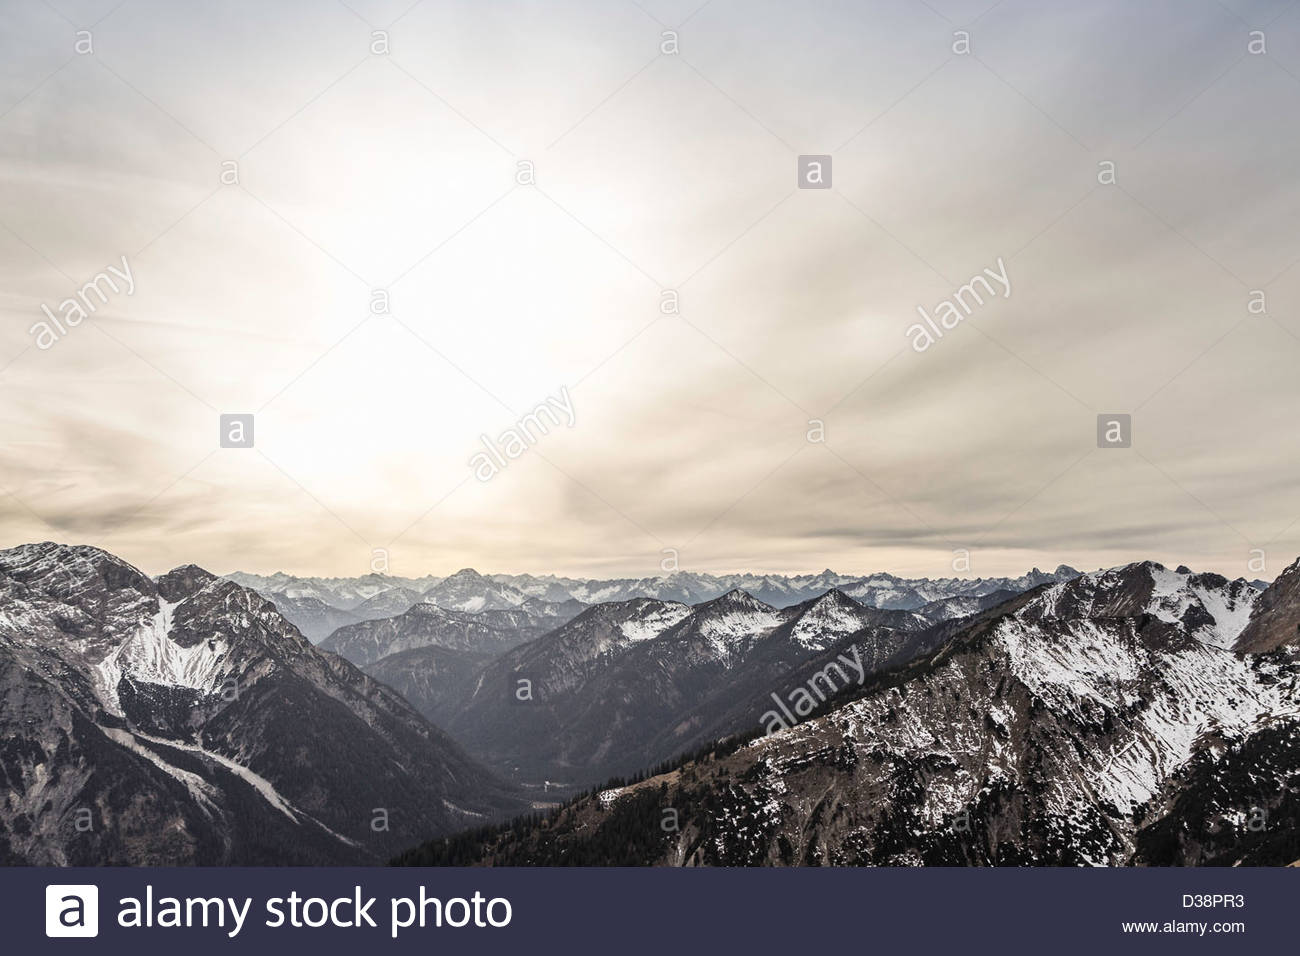 Clouds over mountains in rural landscape - Stock Image